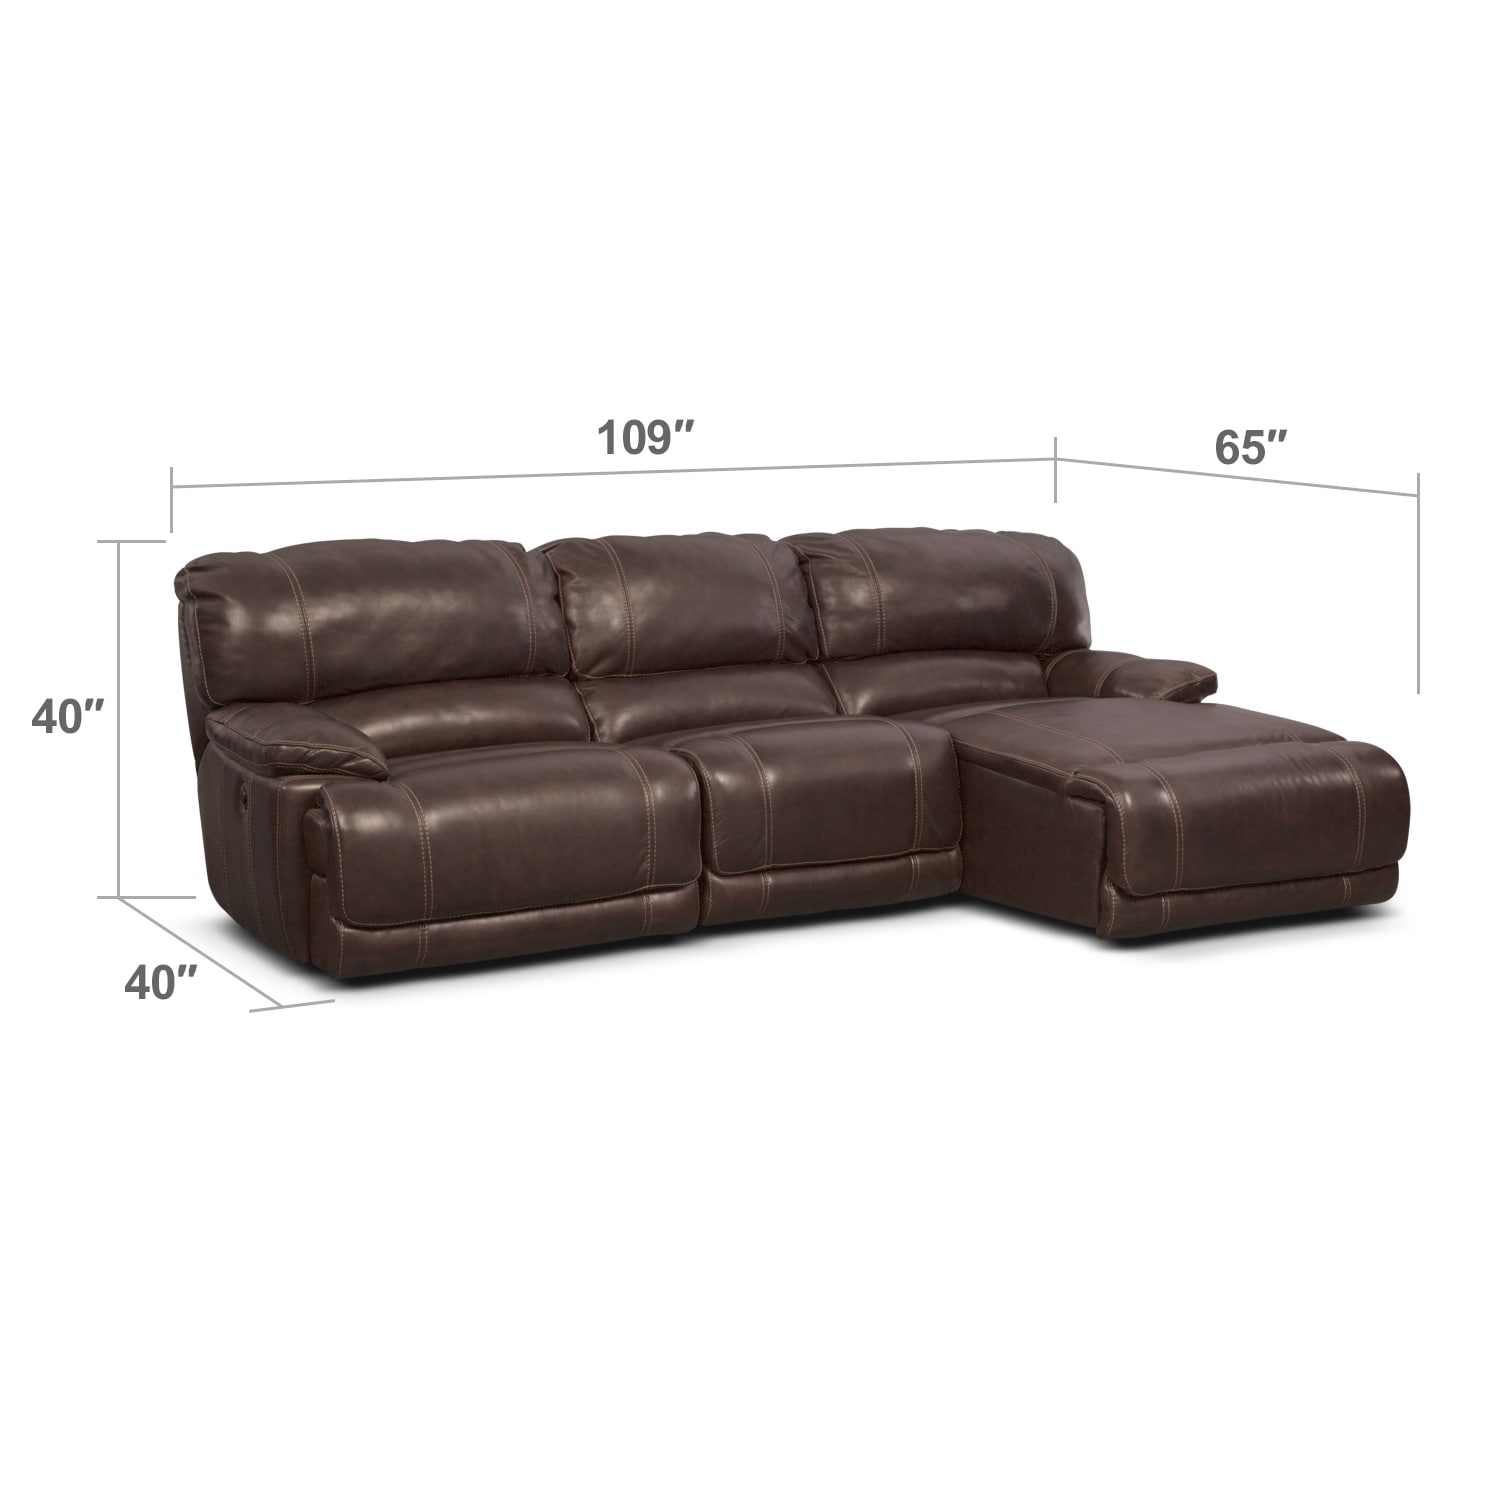 Living Room Furniture - St. Malo 3-Piece Power Reclining Sectional with Right-Facing Chaise - Brown